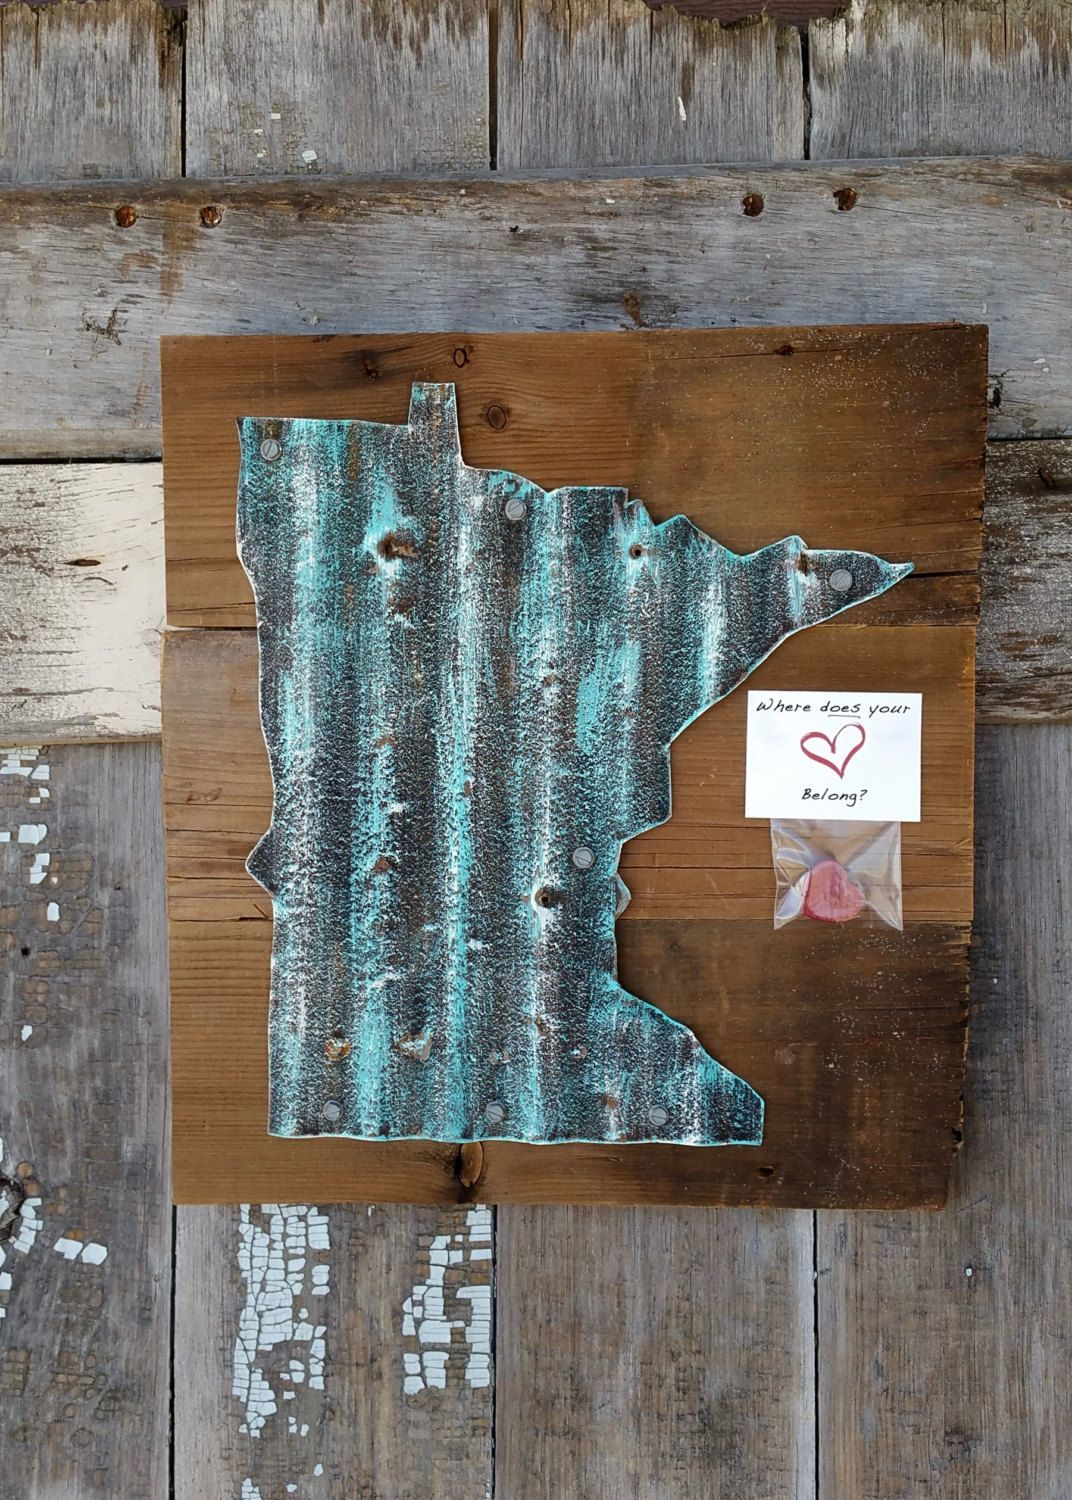 Any State, Corrugated MN State on Barn Wood, Rustic Minnesota, Rustic Home  Decor,Reclaimed Wood,MN Wall Art, Distressed Sign 12